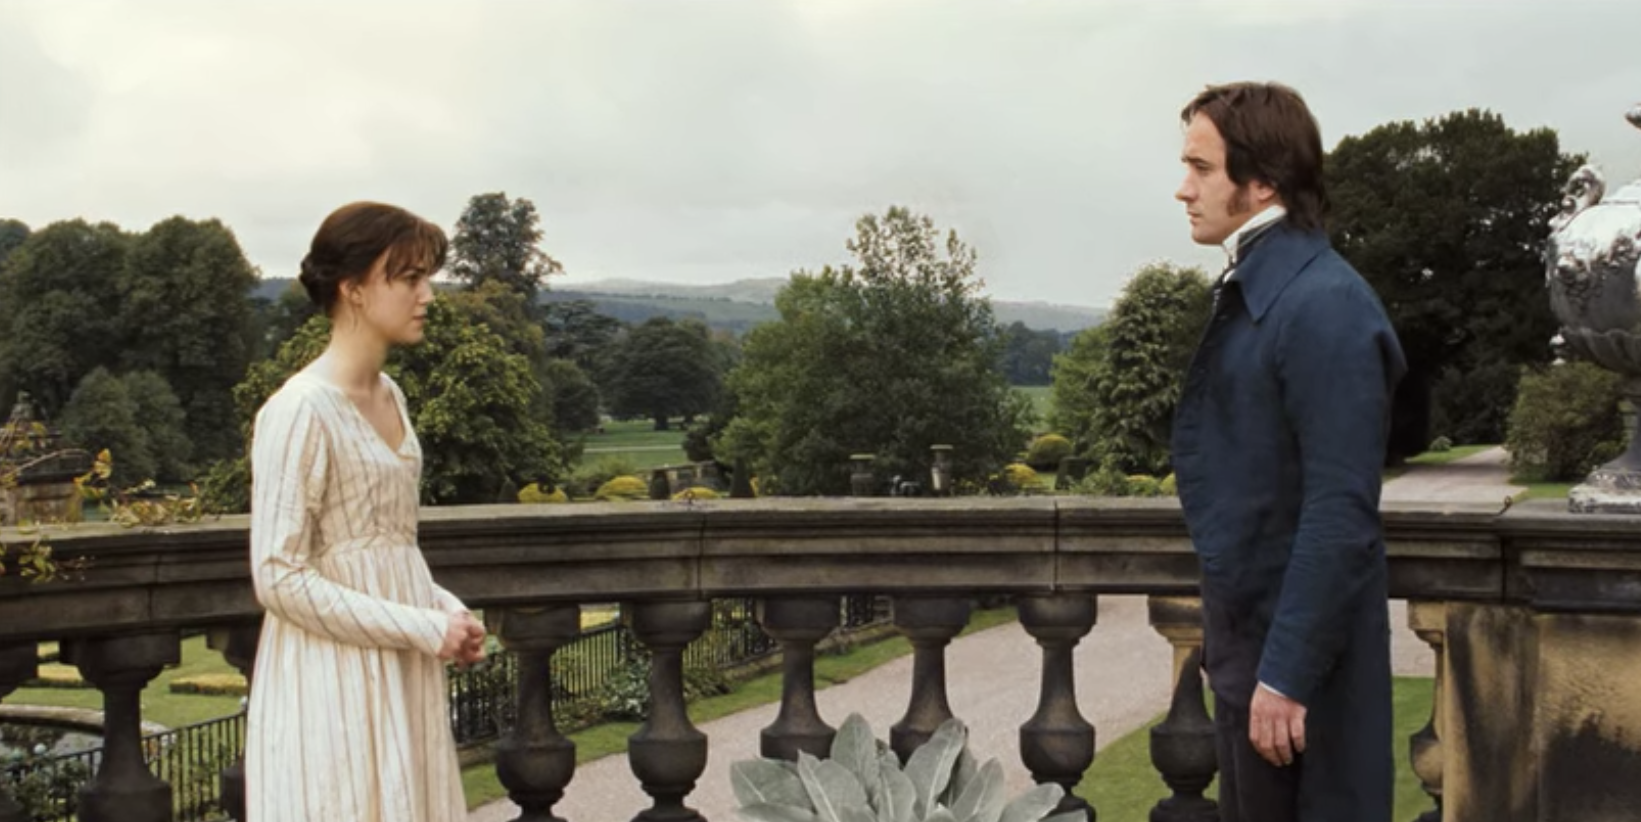 Lizzie and Mr. Darcy exchanging words on the balcony at Pemberly.